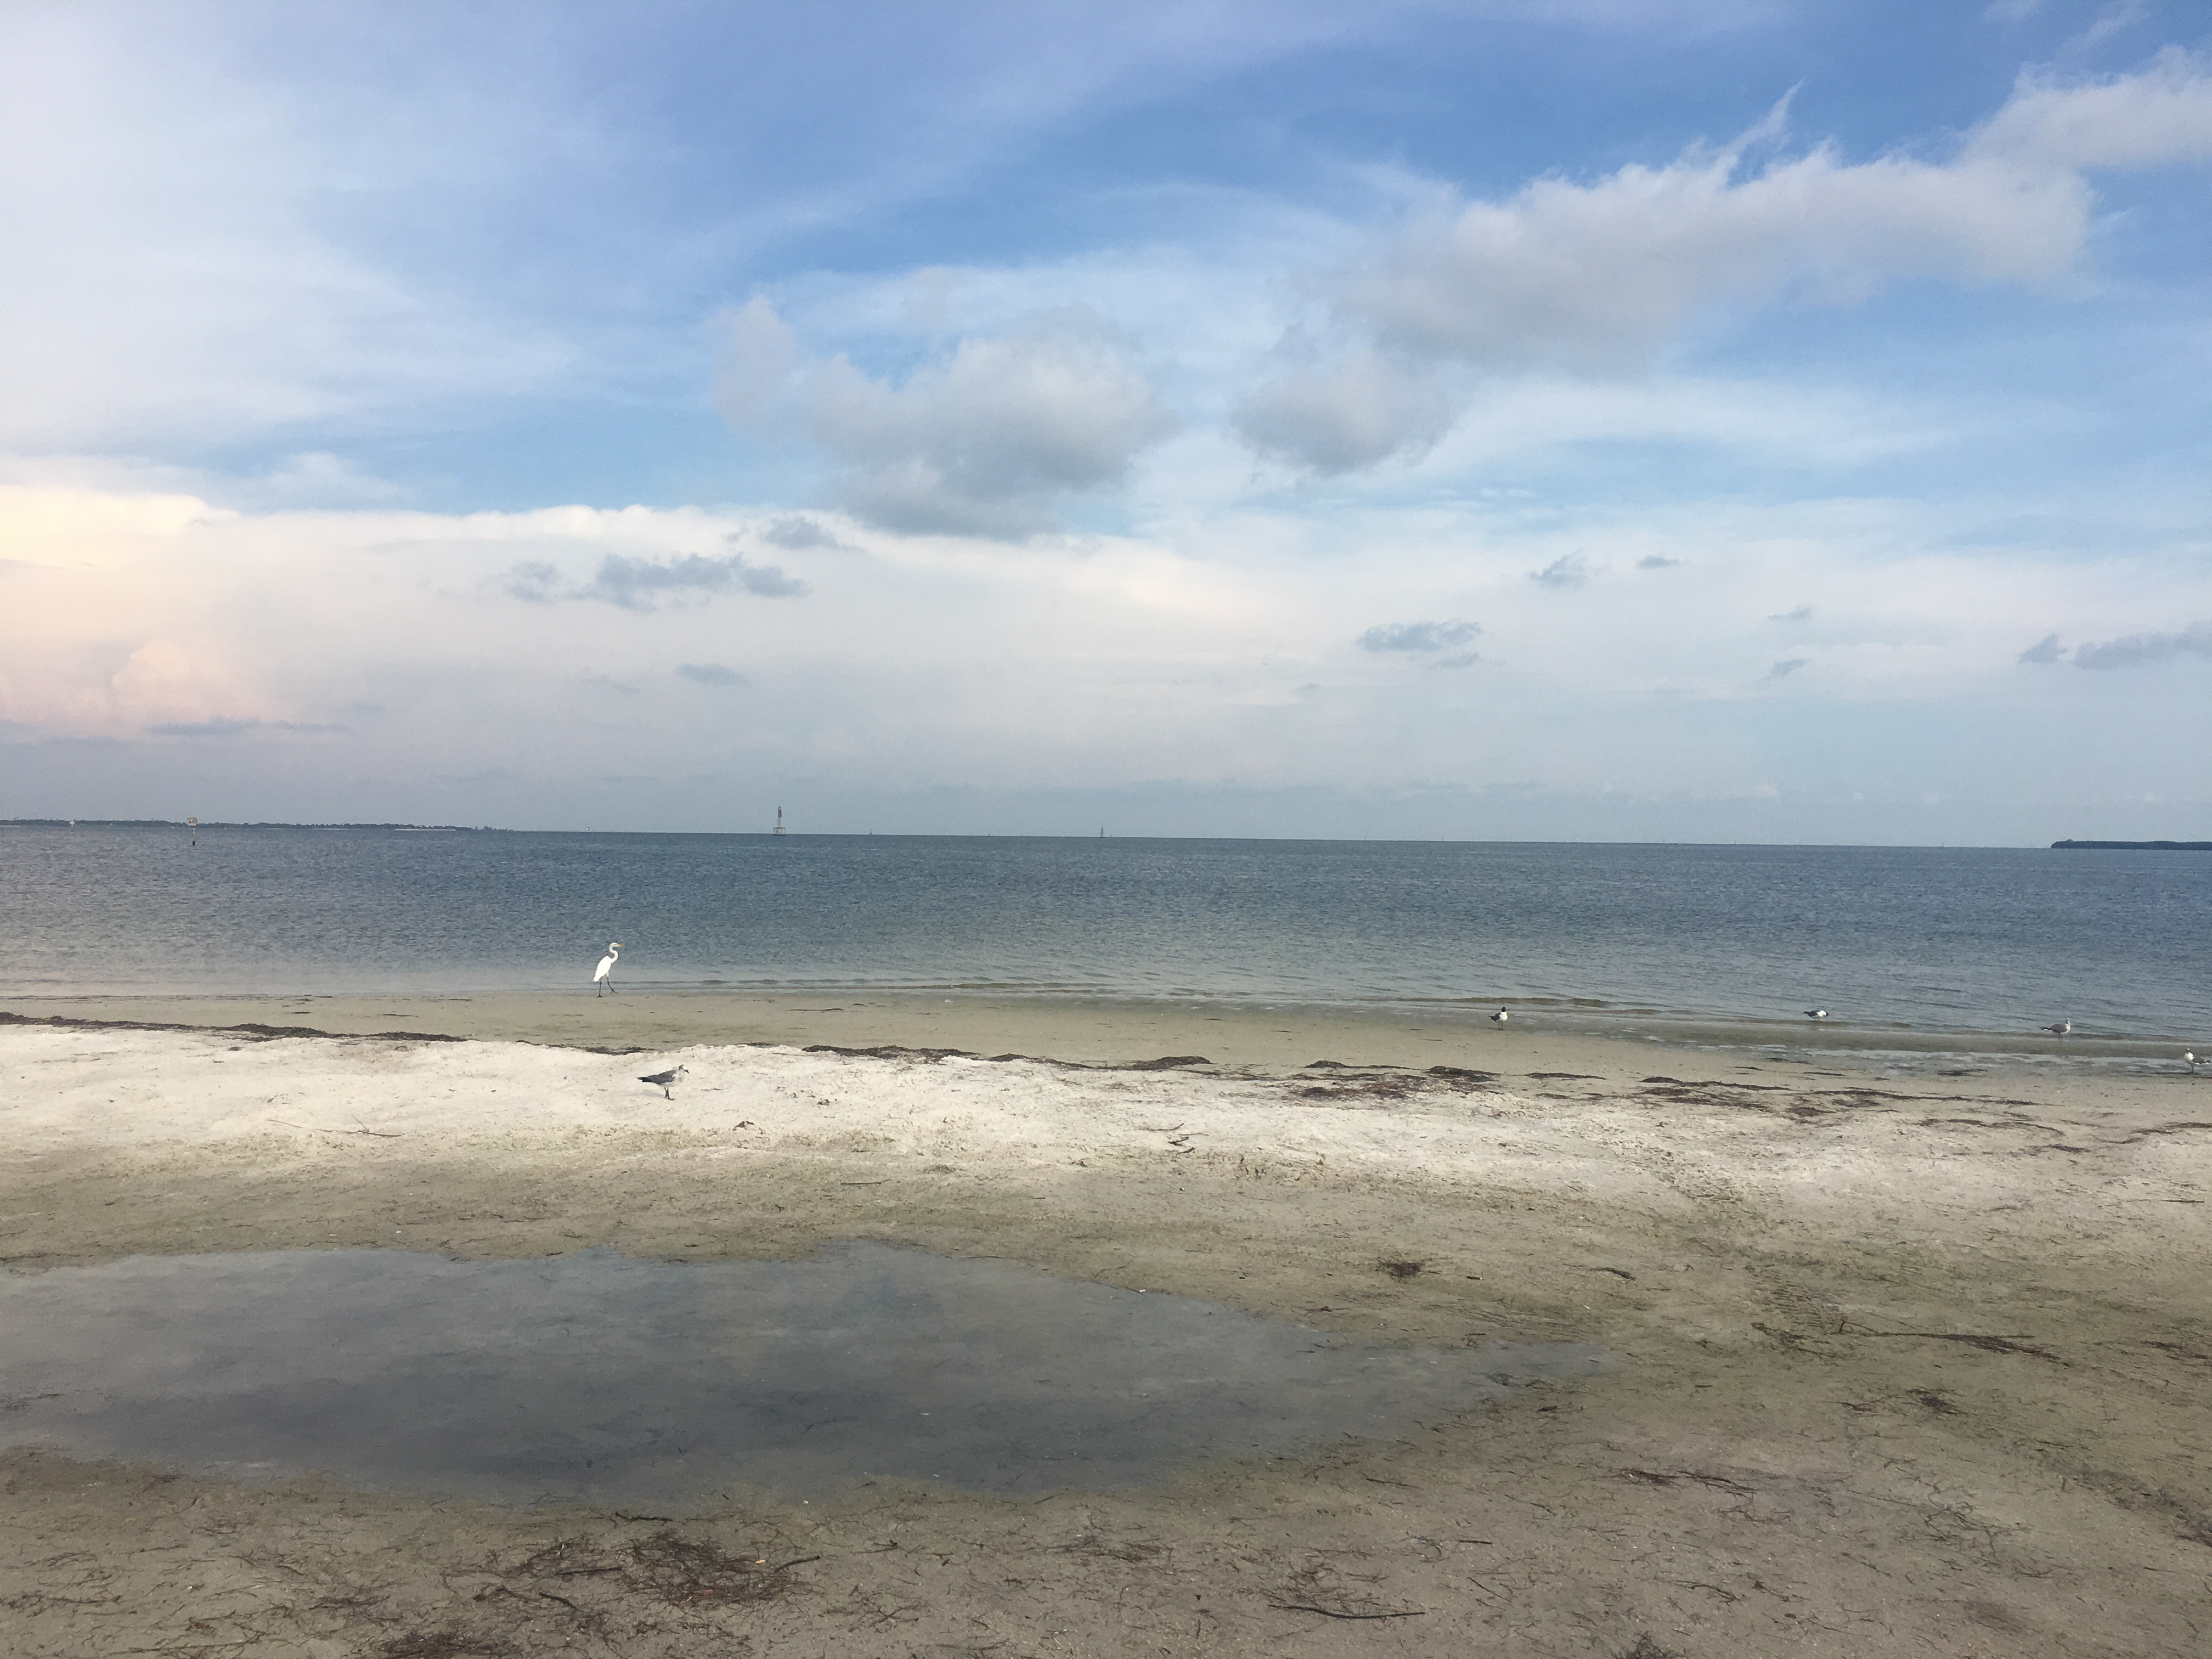 Flesh-eating bacteria not just in the water | WFLA